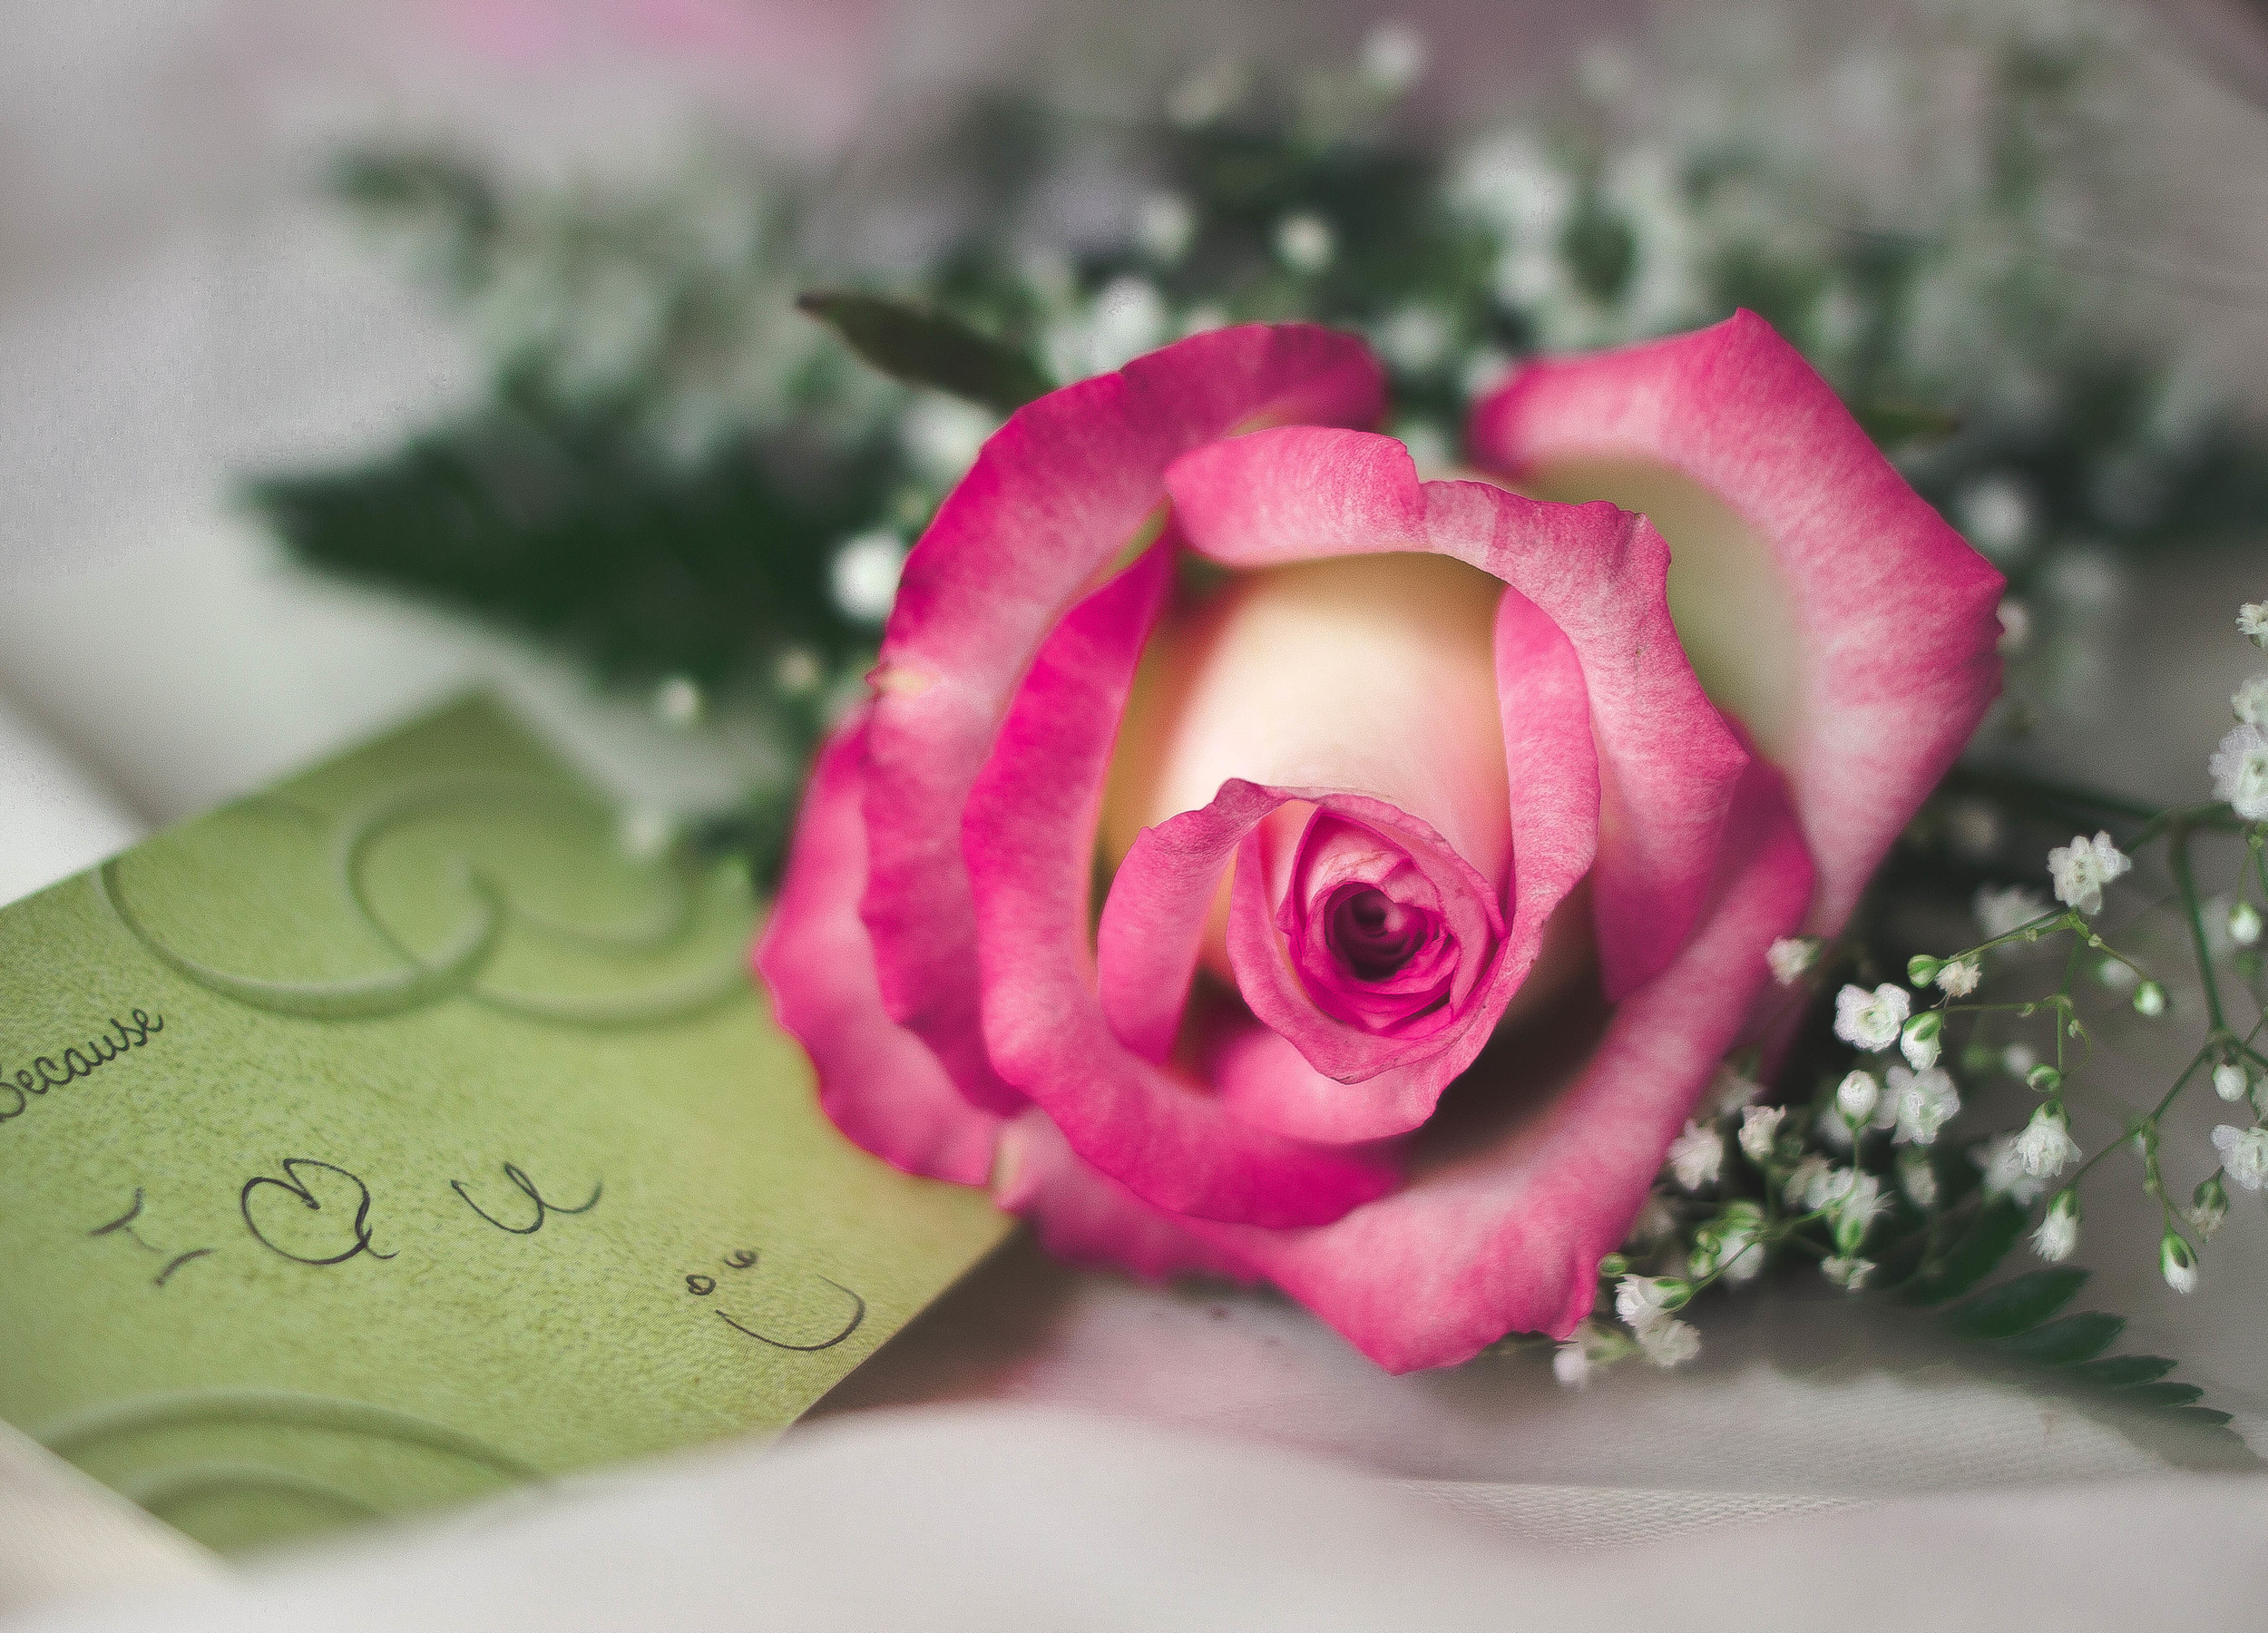 Petals in a Pink Rose | by fit for the soul